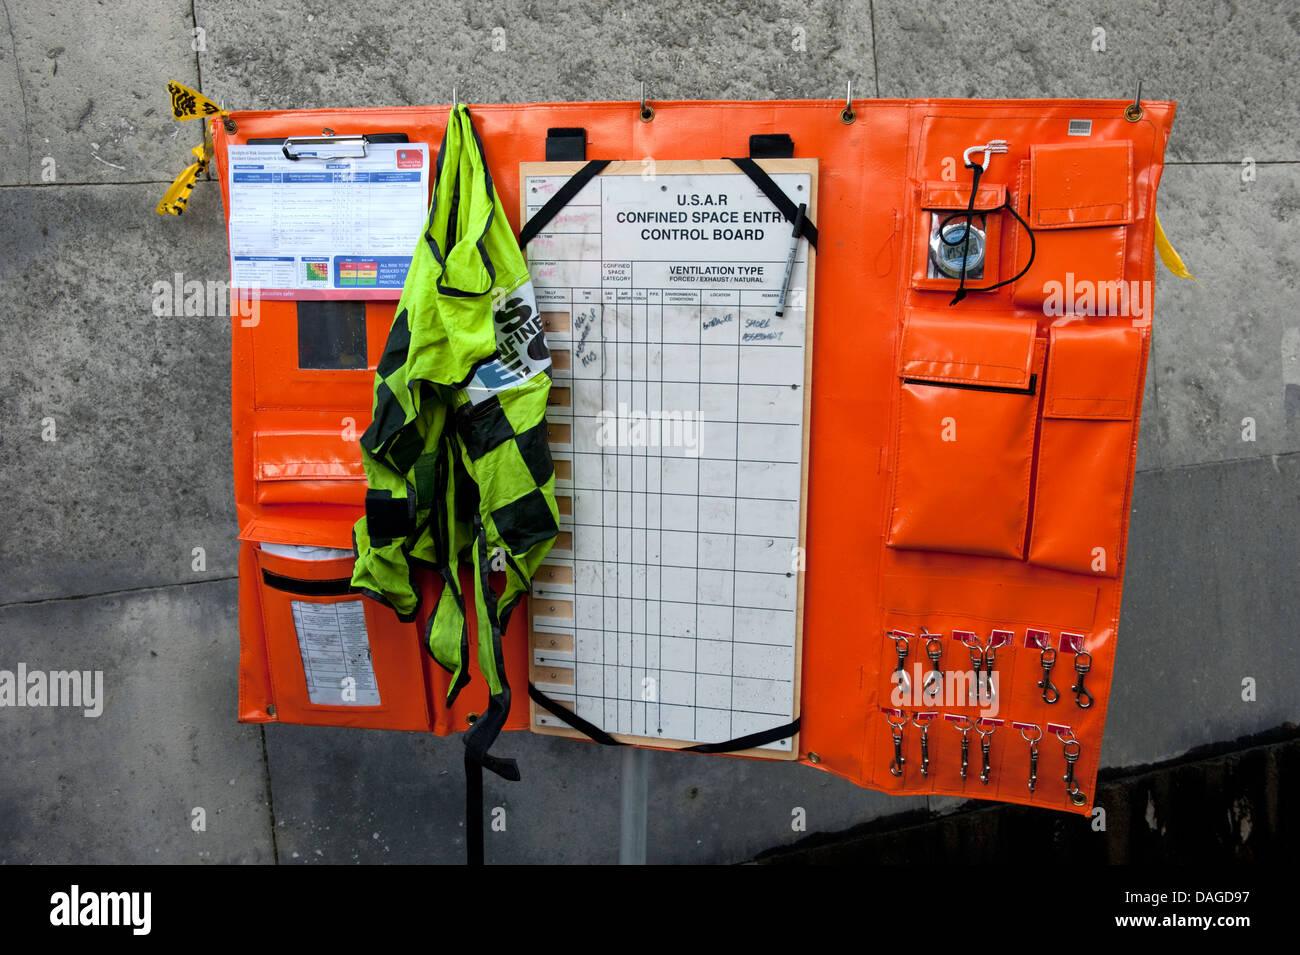 USAR Confined Space Entry Control Board BA - Stock Image